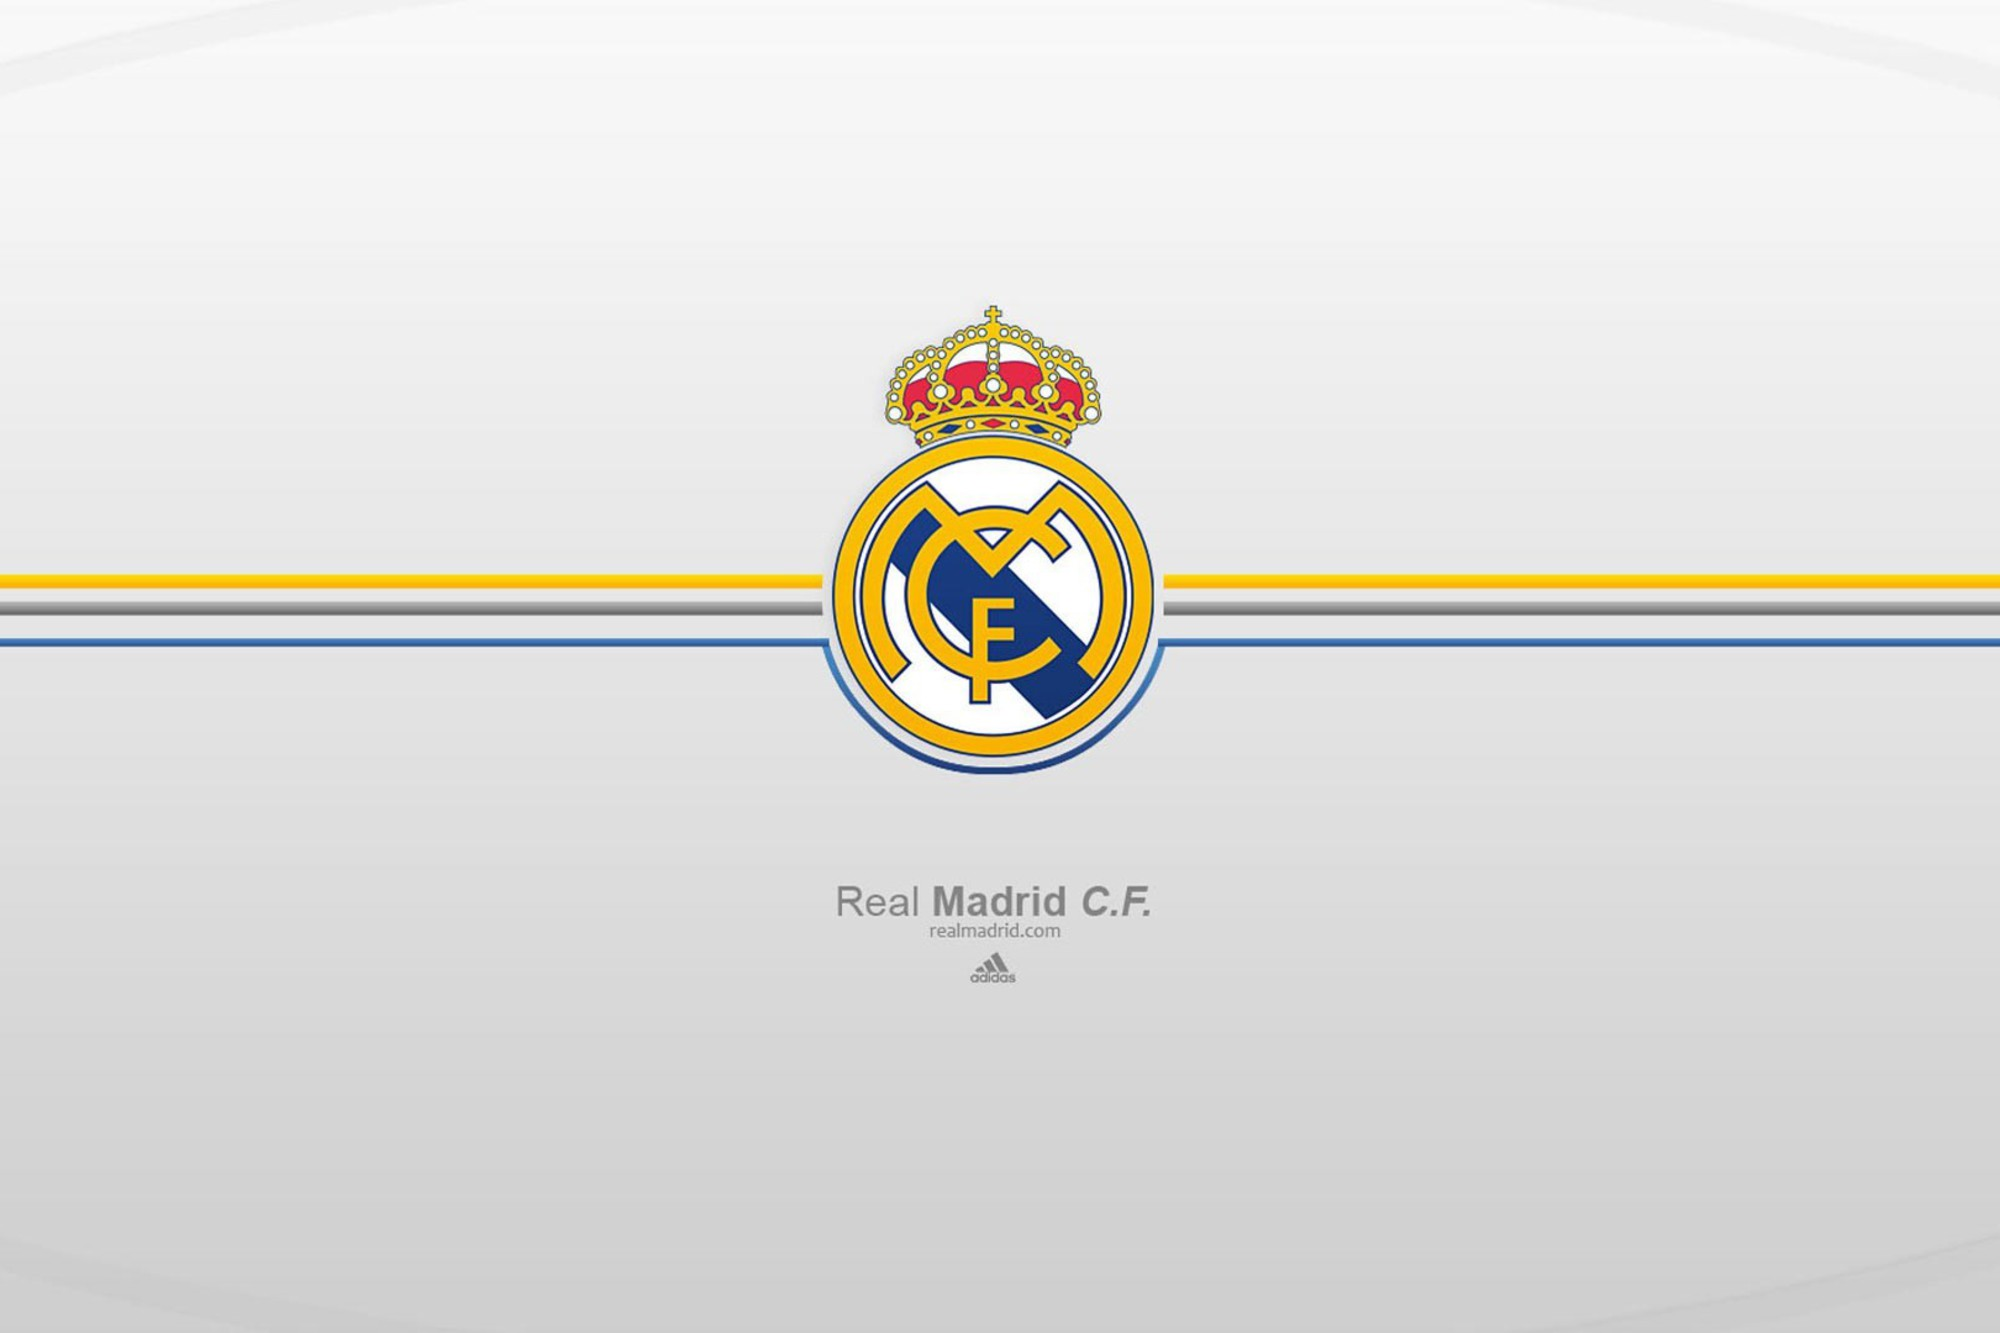 2000x1333 - Real Madrid C.F. Wallpapers 12